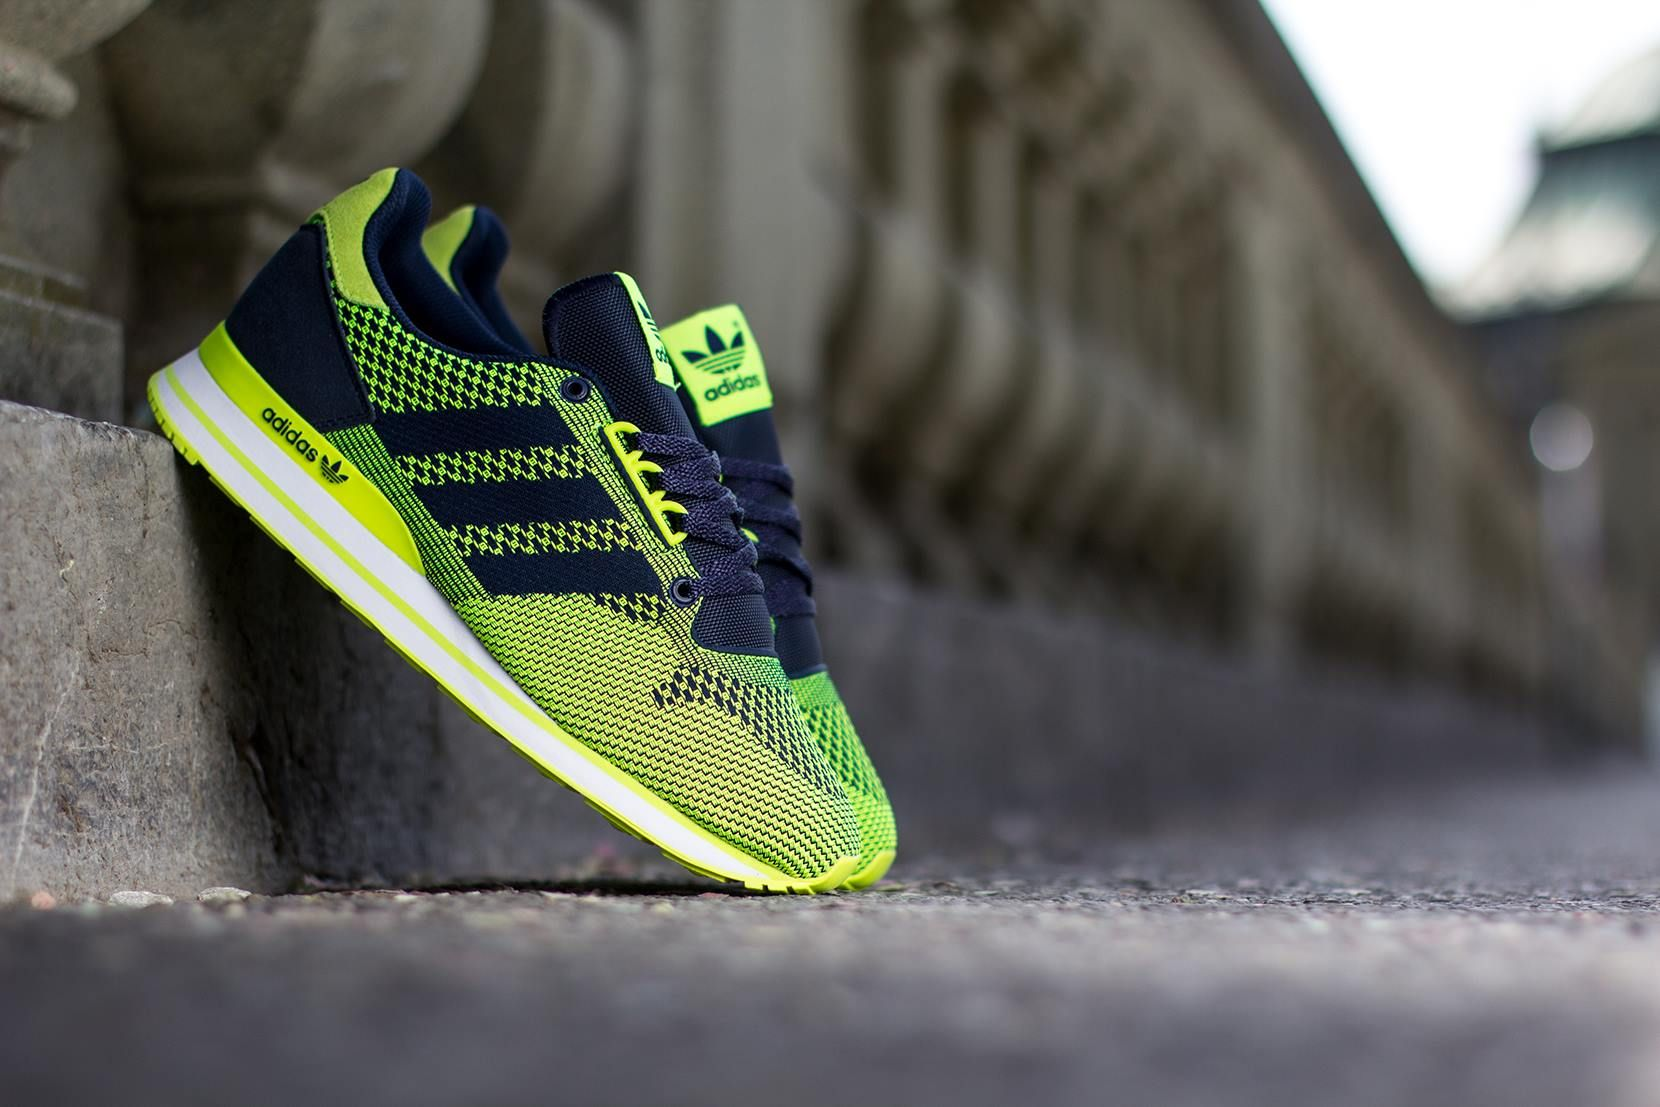 Adidas ZX 500 OG Weave | Stylish sneakers, Sneakers